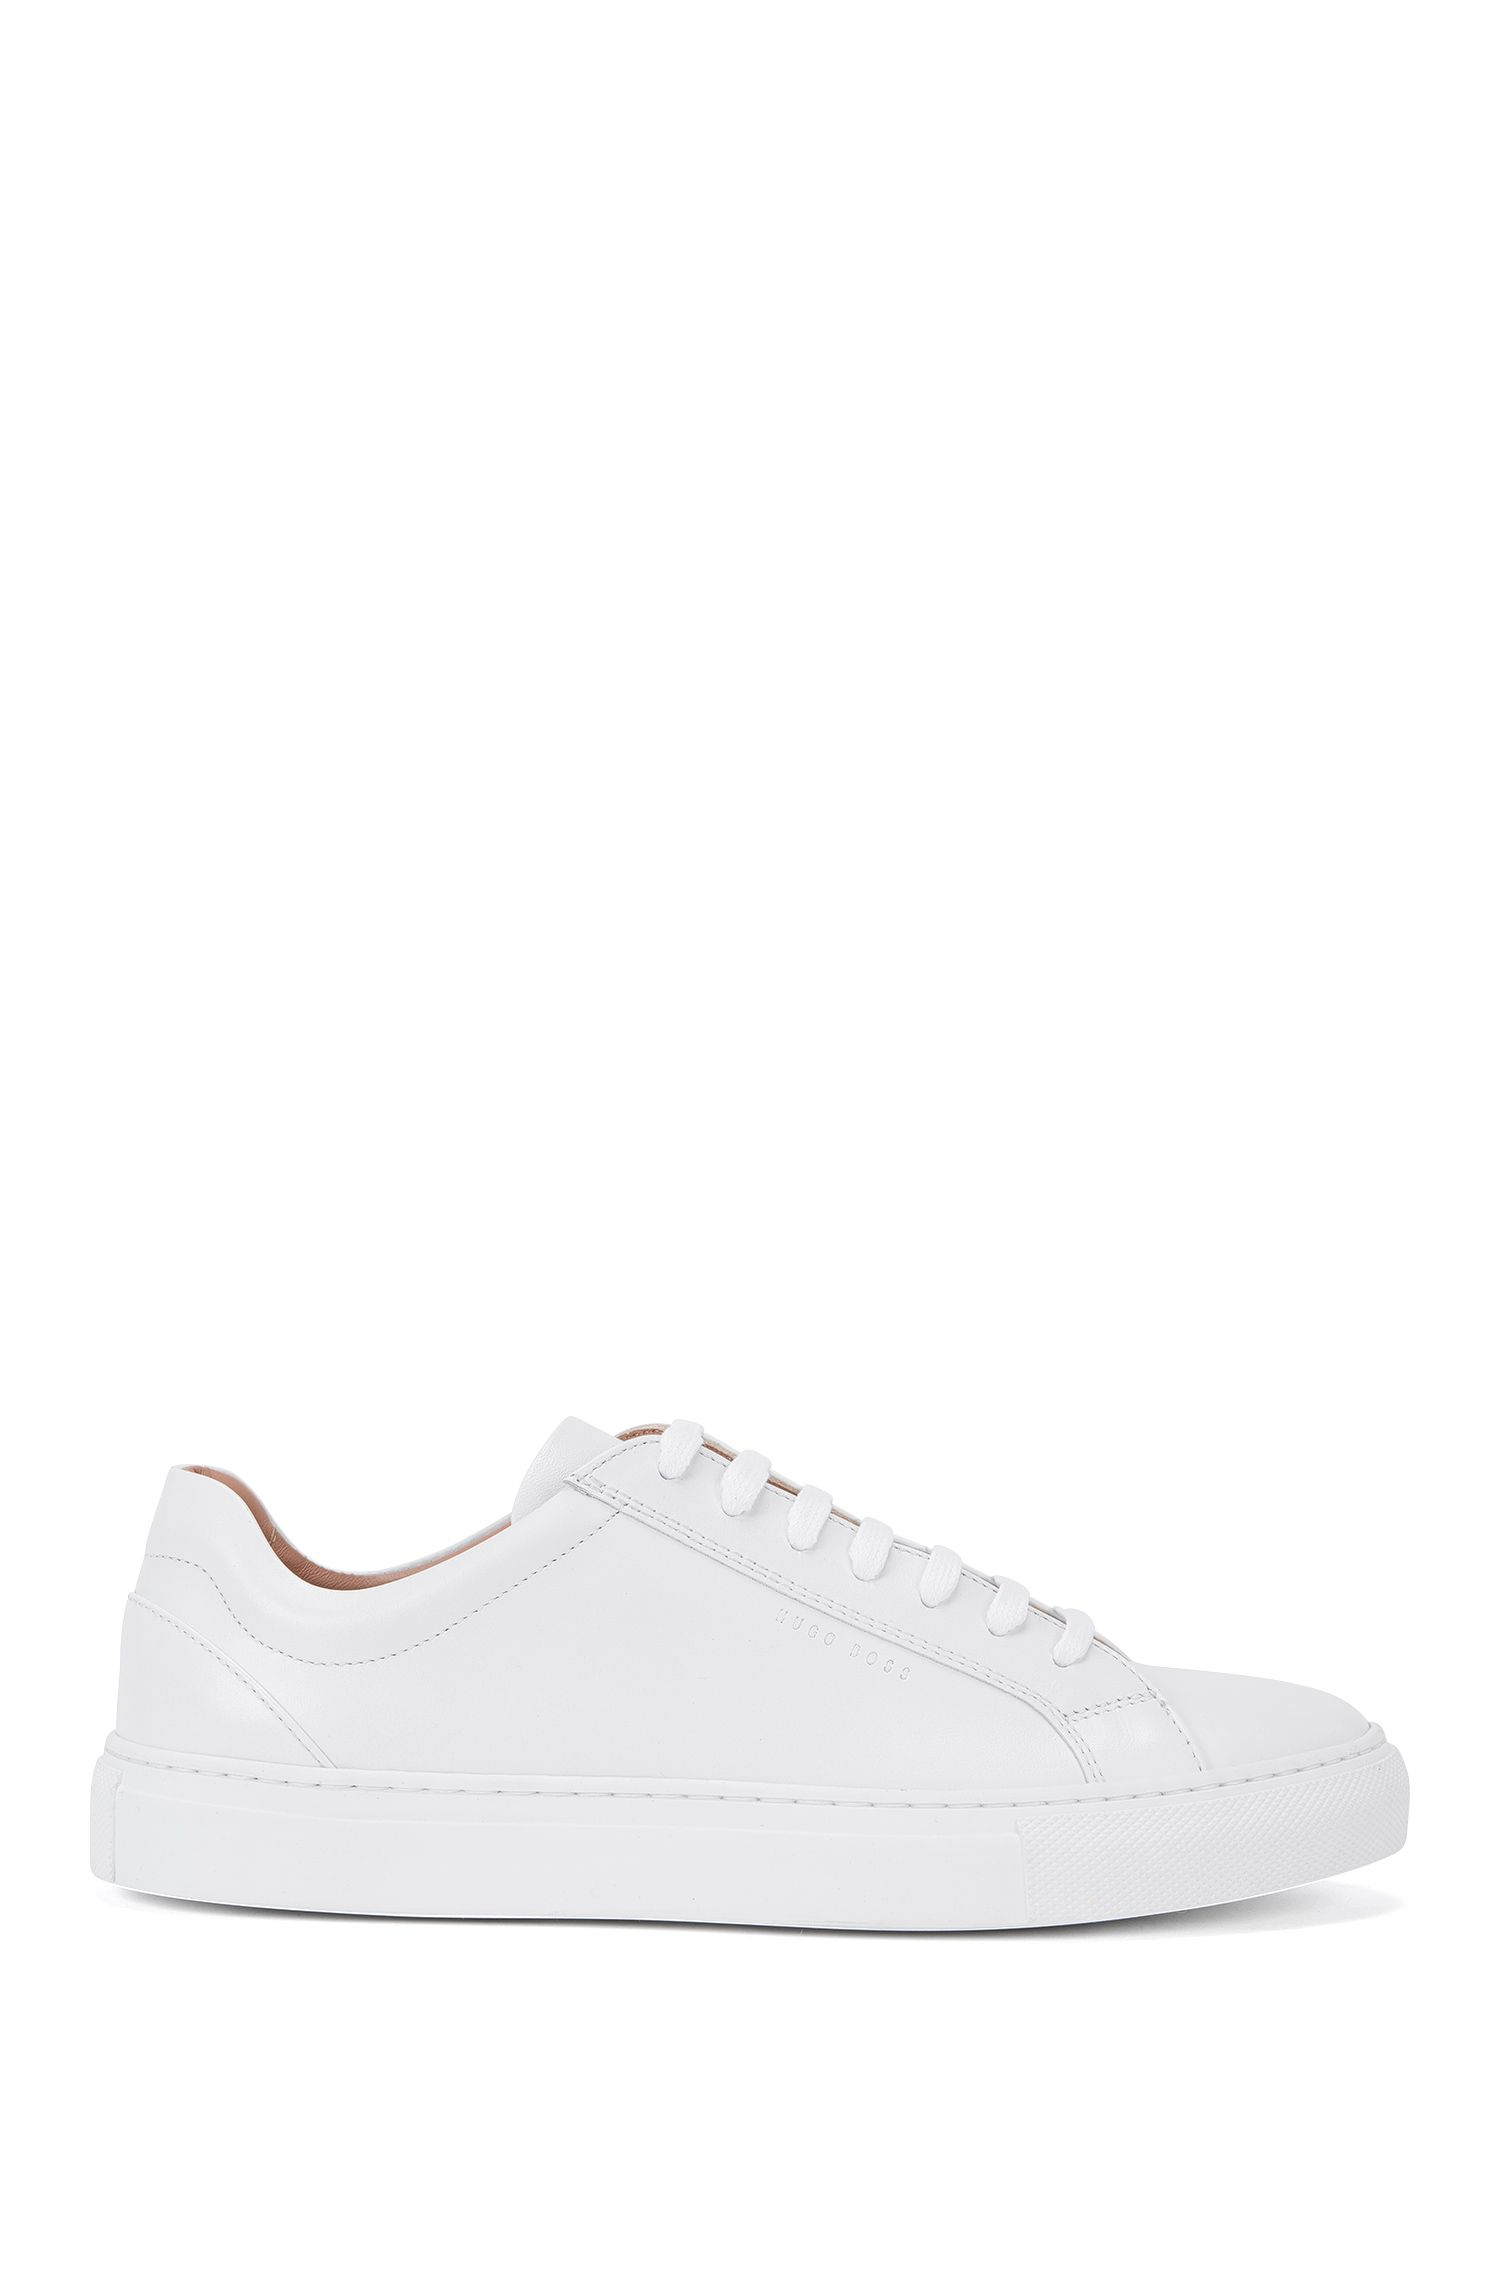 Unifarbene Sneakers aus Leder: 'Low Cut-C'